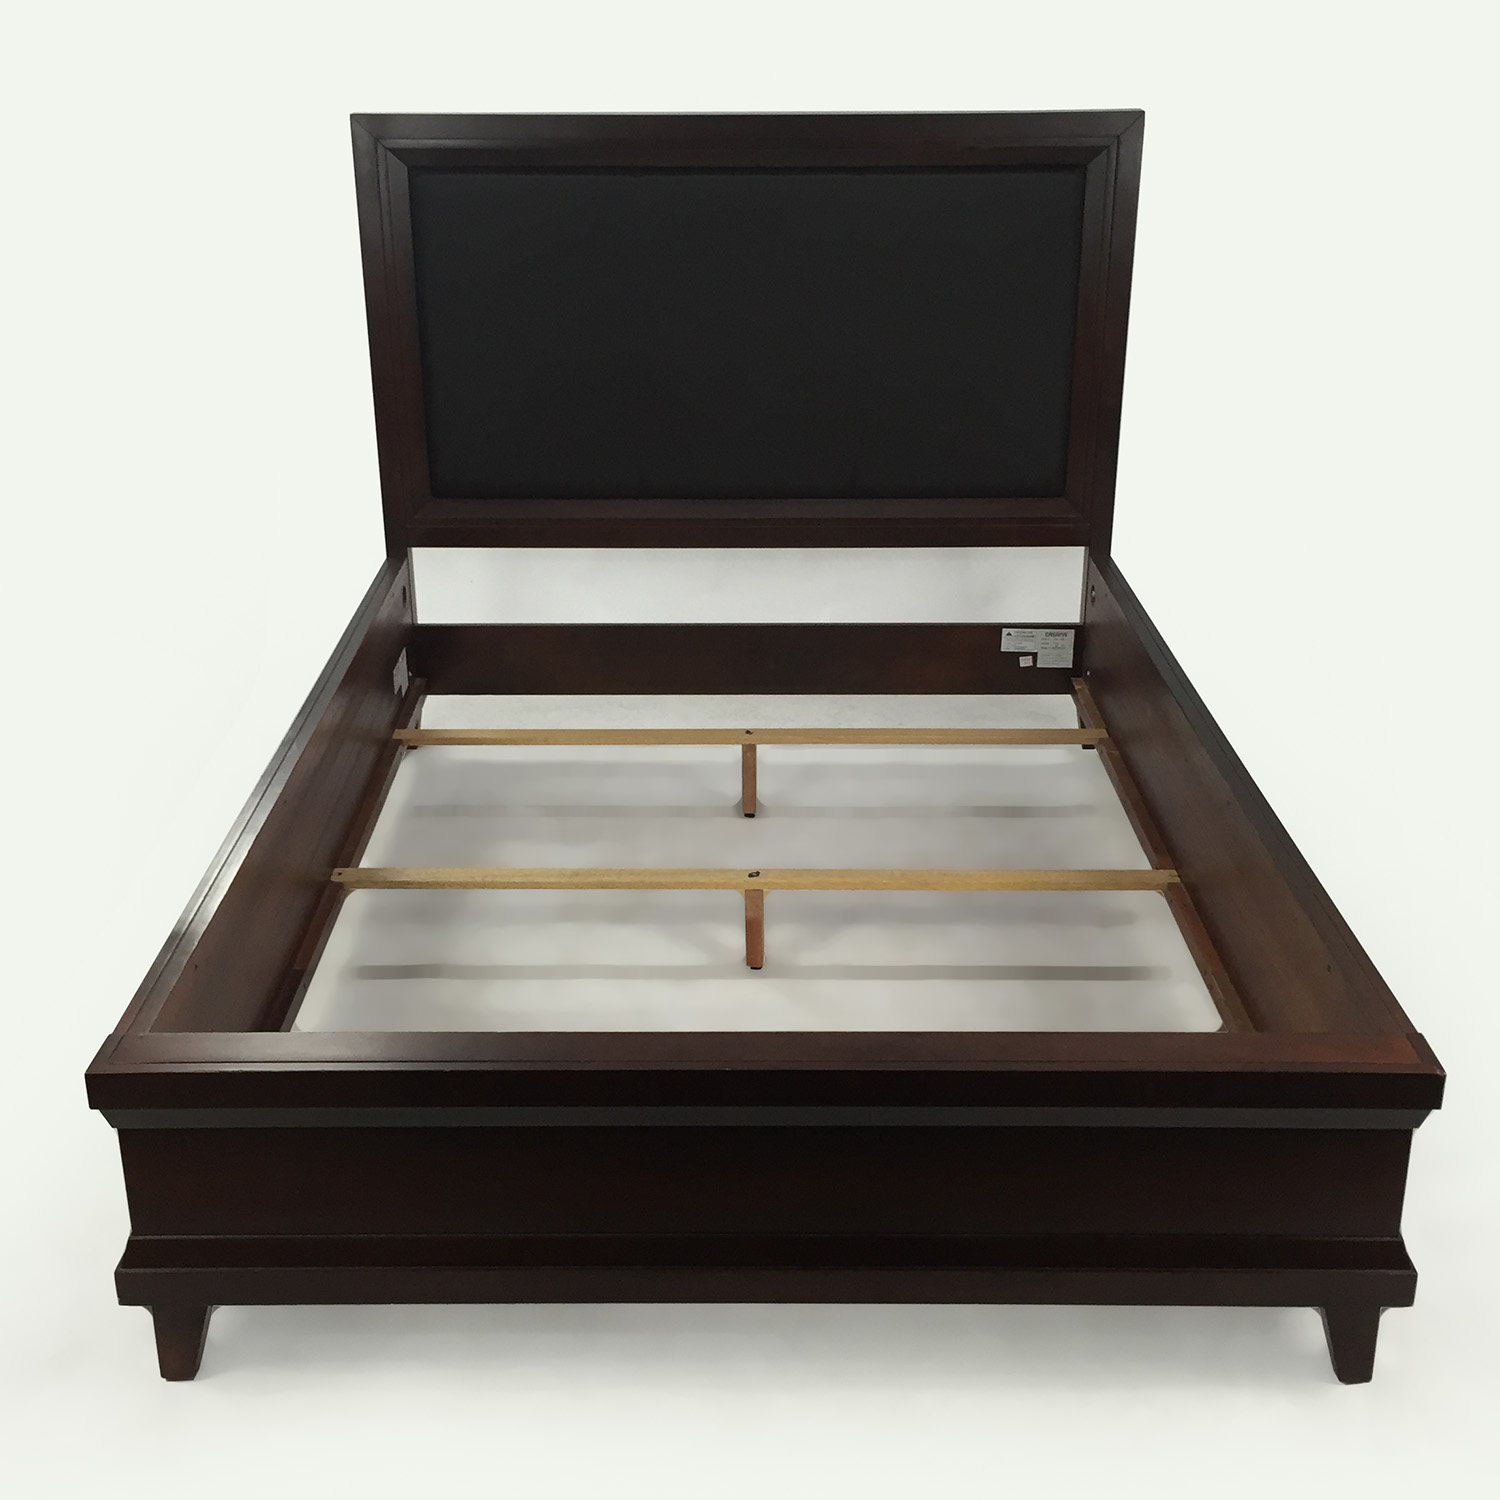 raymour and flanigan vista queen platform look bed brown